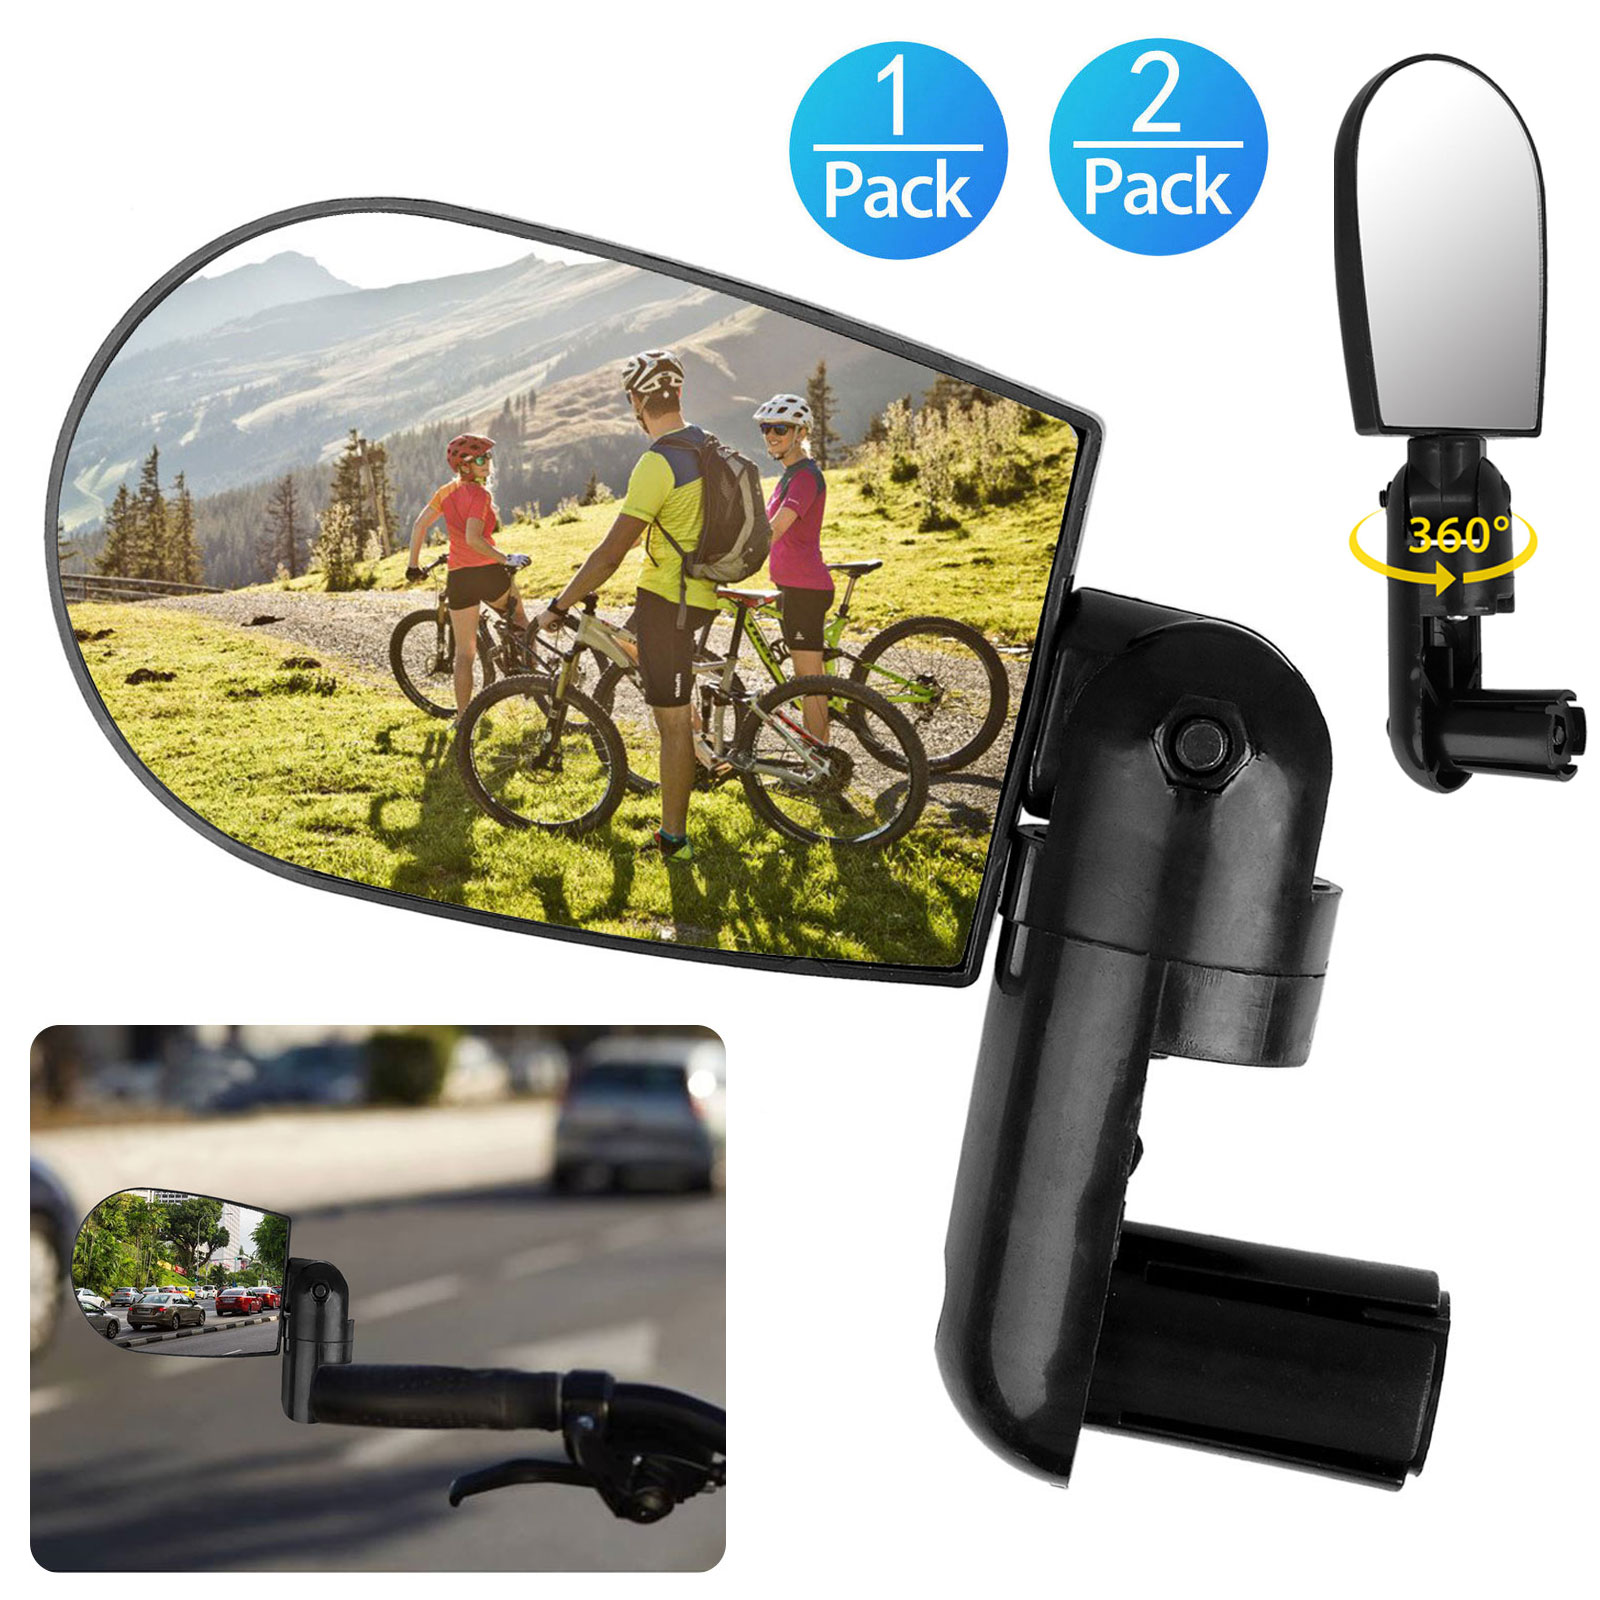 Rotatable-Handlebar-Rearview-Mirror-for-Bike-Bicycle-Cycling-Rear-View-Mirror thumbnail 10